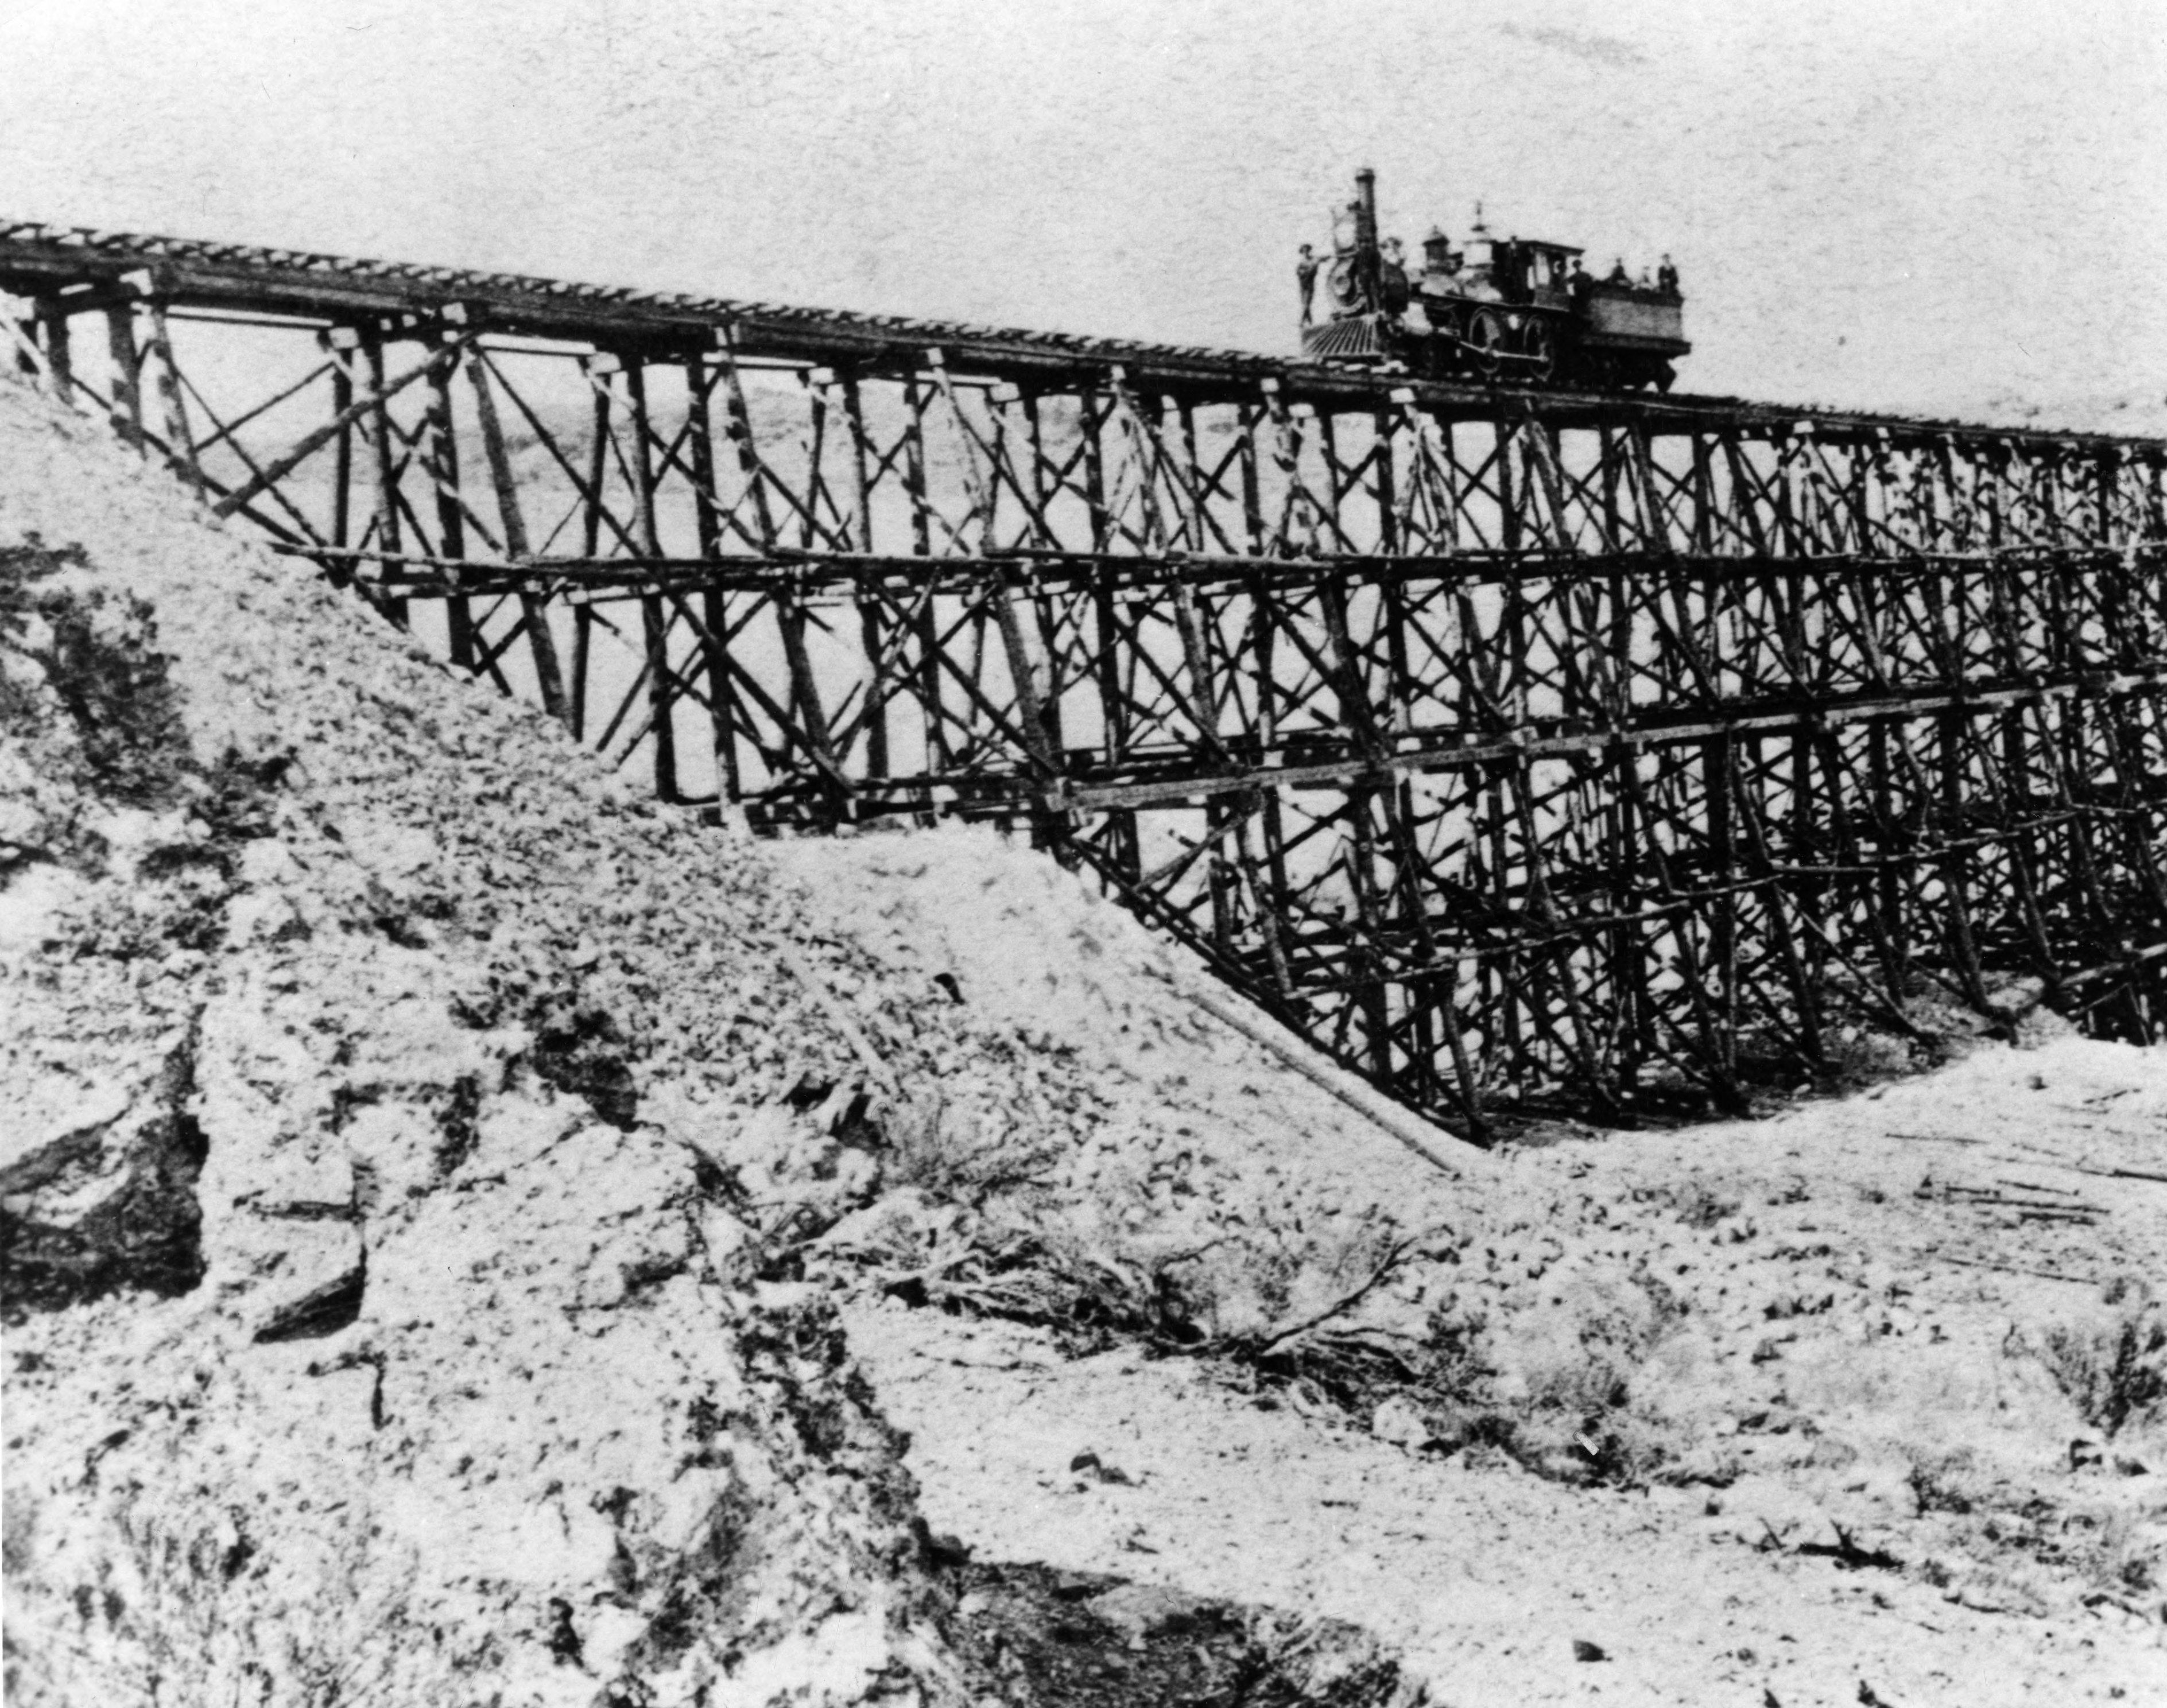 Trestle Union Pacific No. 119 drives on the high trestle on the east slope of the North Promontory Range in 1869.